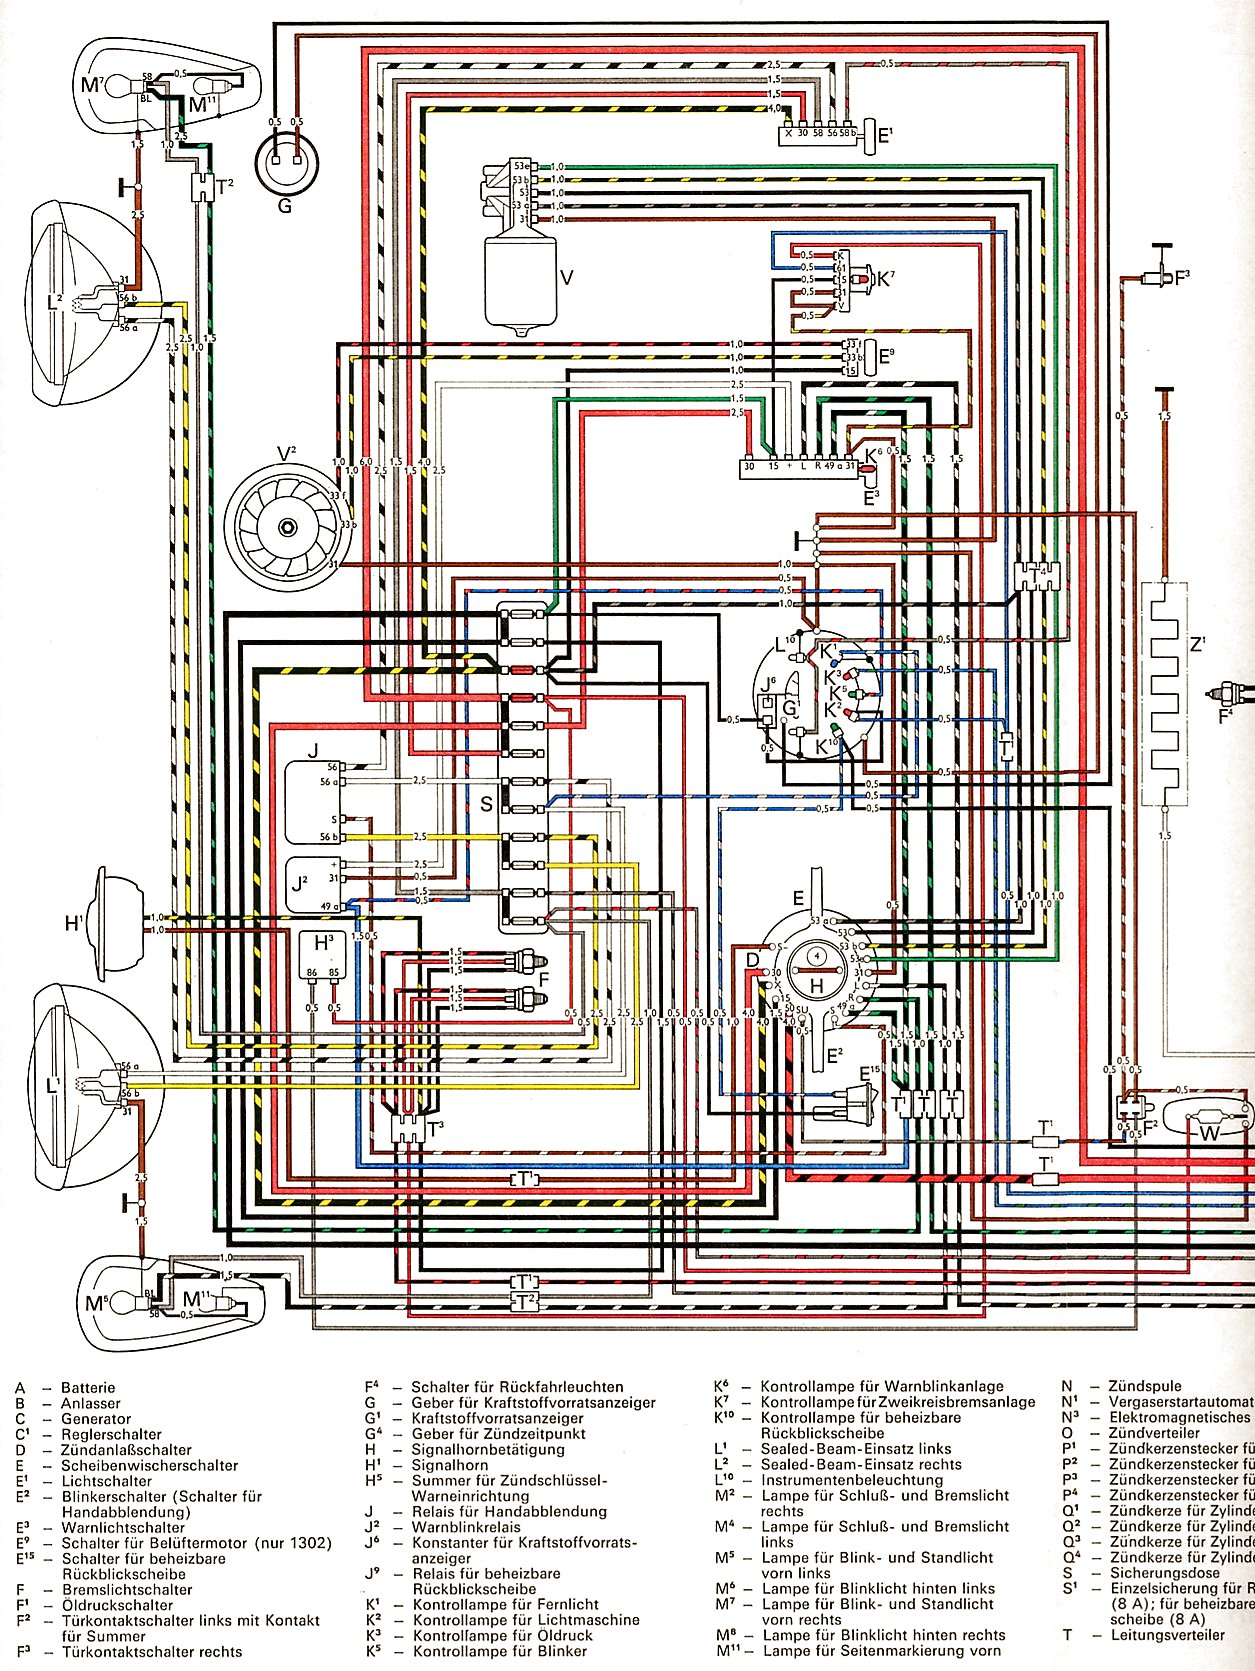 1300_and_1302_USA_from_August_1971 1 wiring diagram shoptalkforums com 1971 vw beetle wiring diagram at panicattacktreatment.co